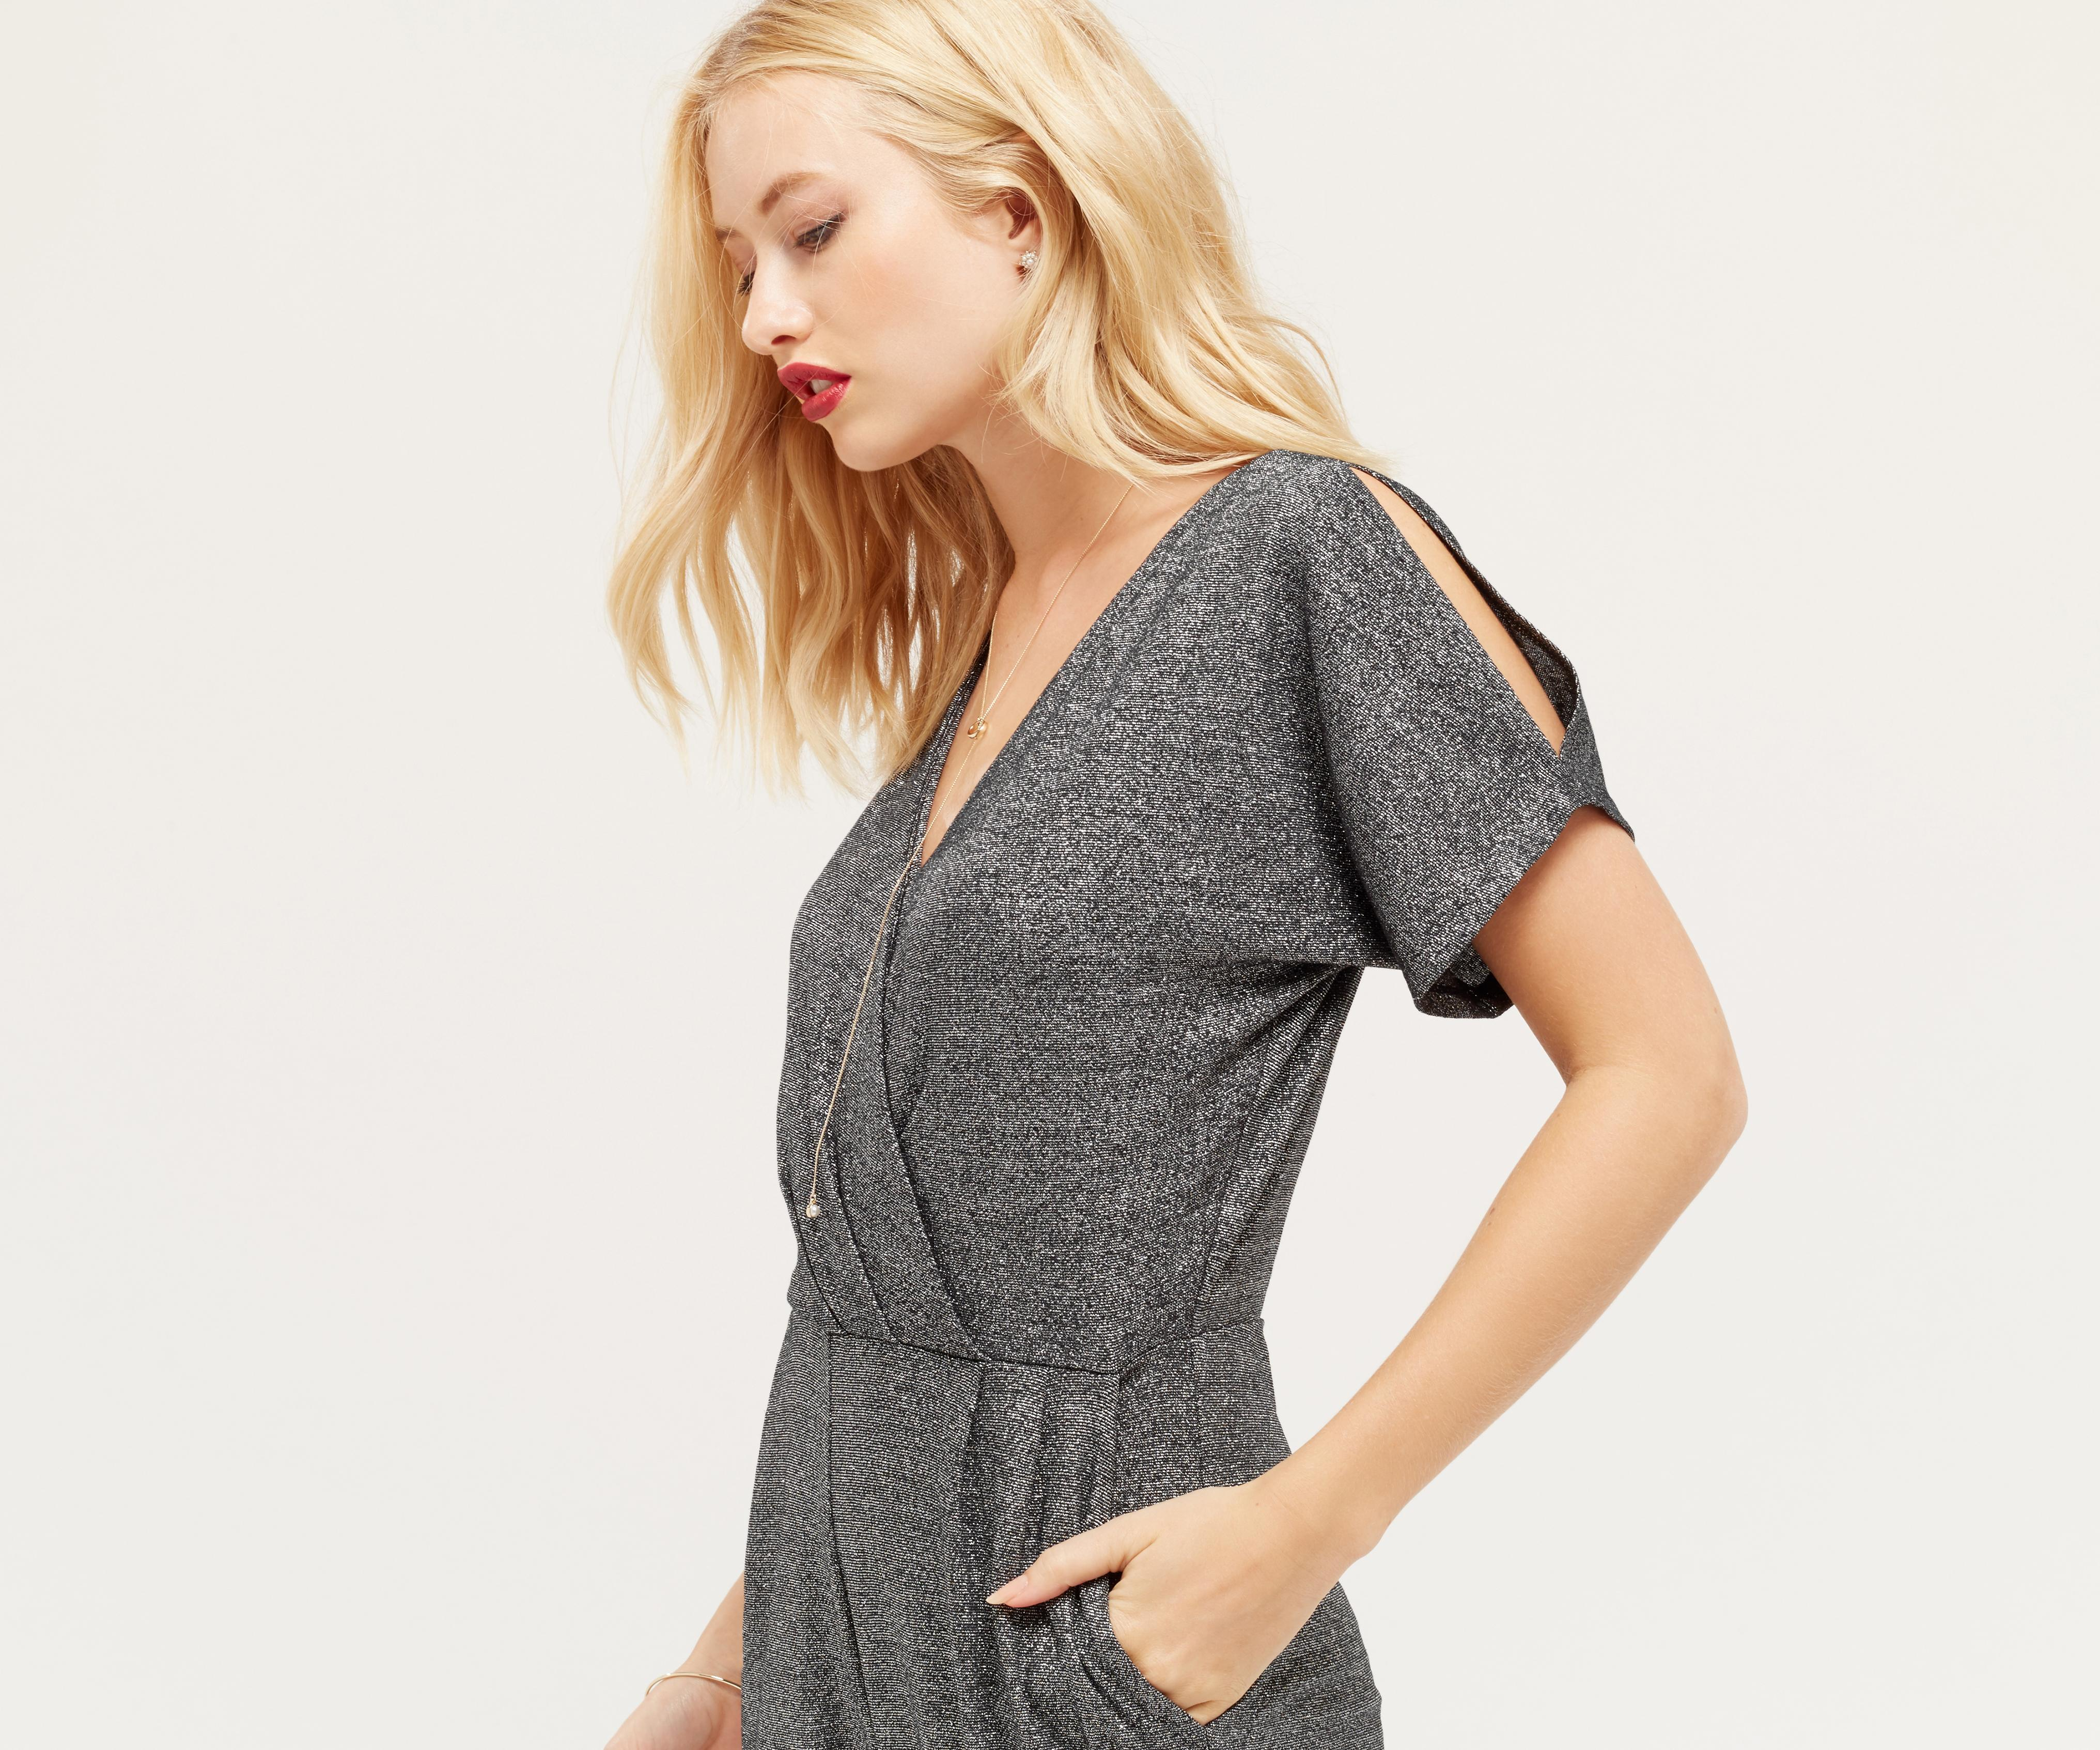 b5a3fb93ff0 Oasis Cold Shoulder Sparkle Jumpsuit - Silver in Metallic - Lyst